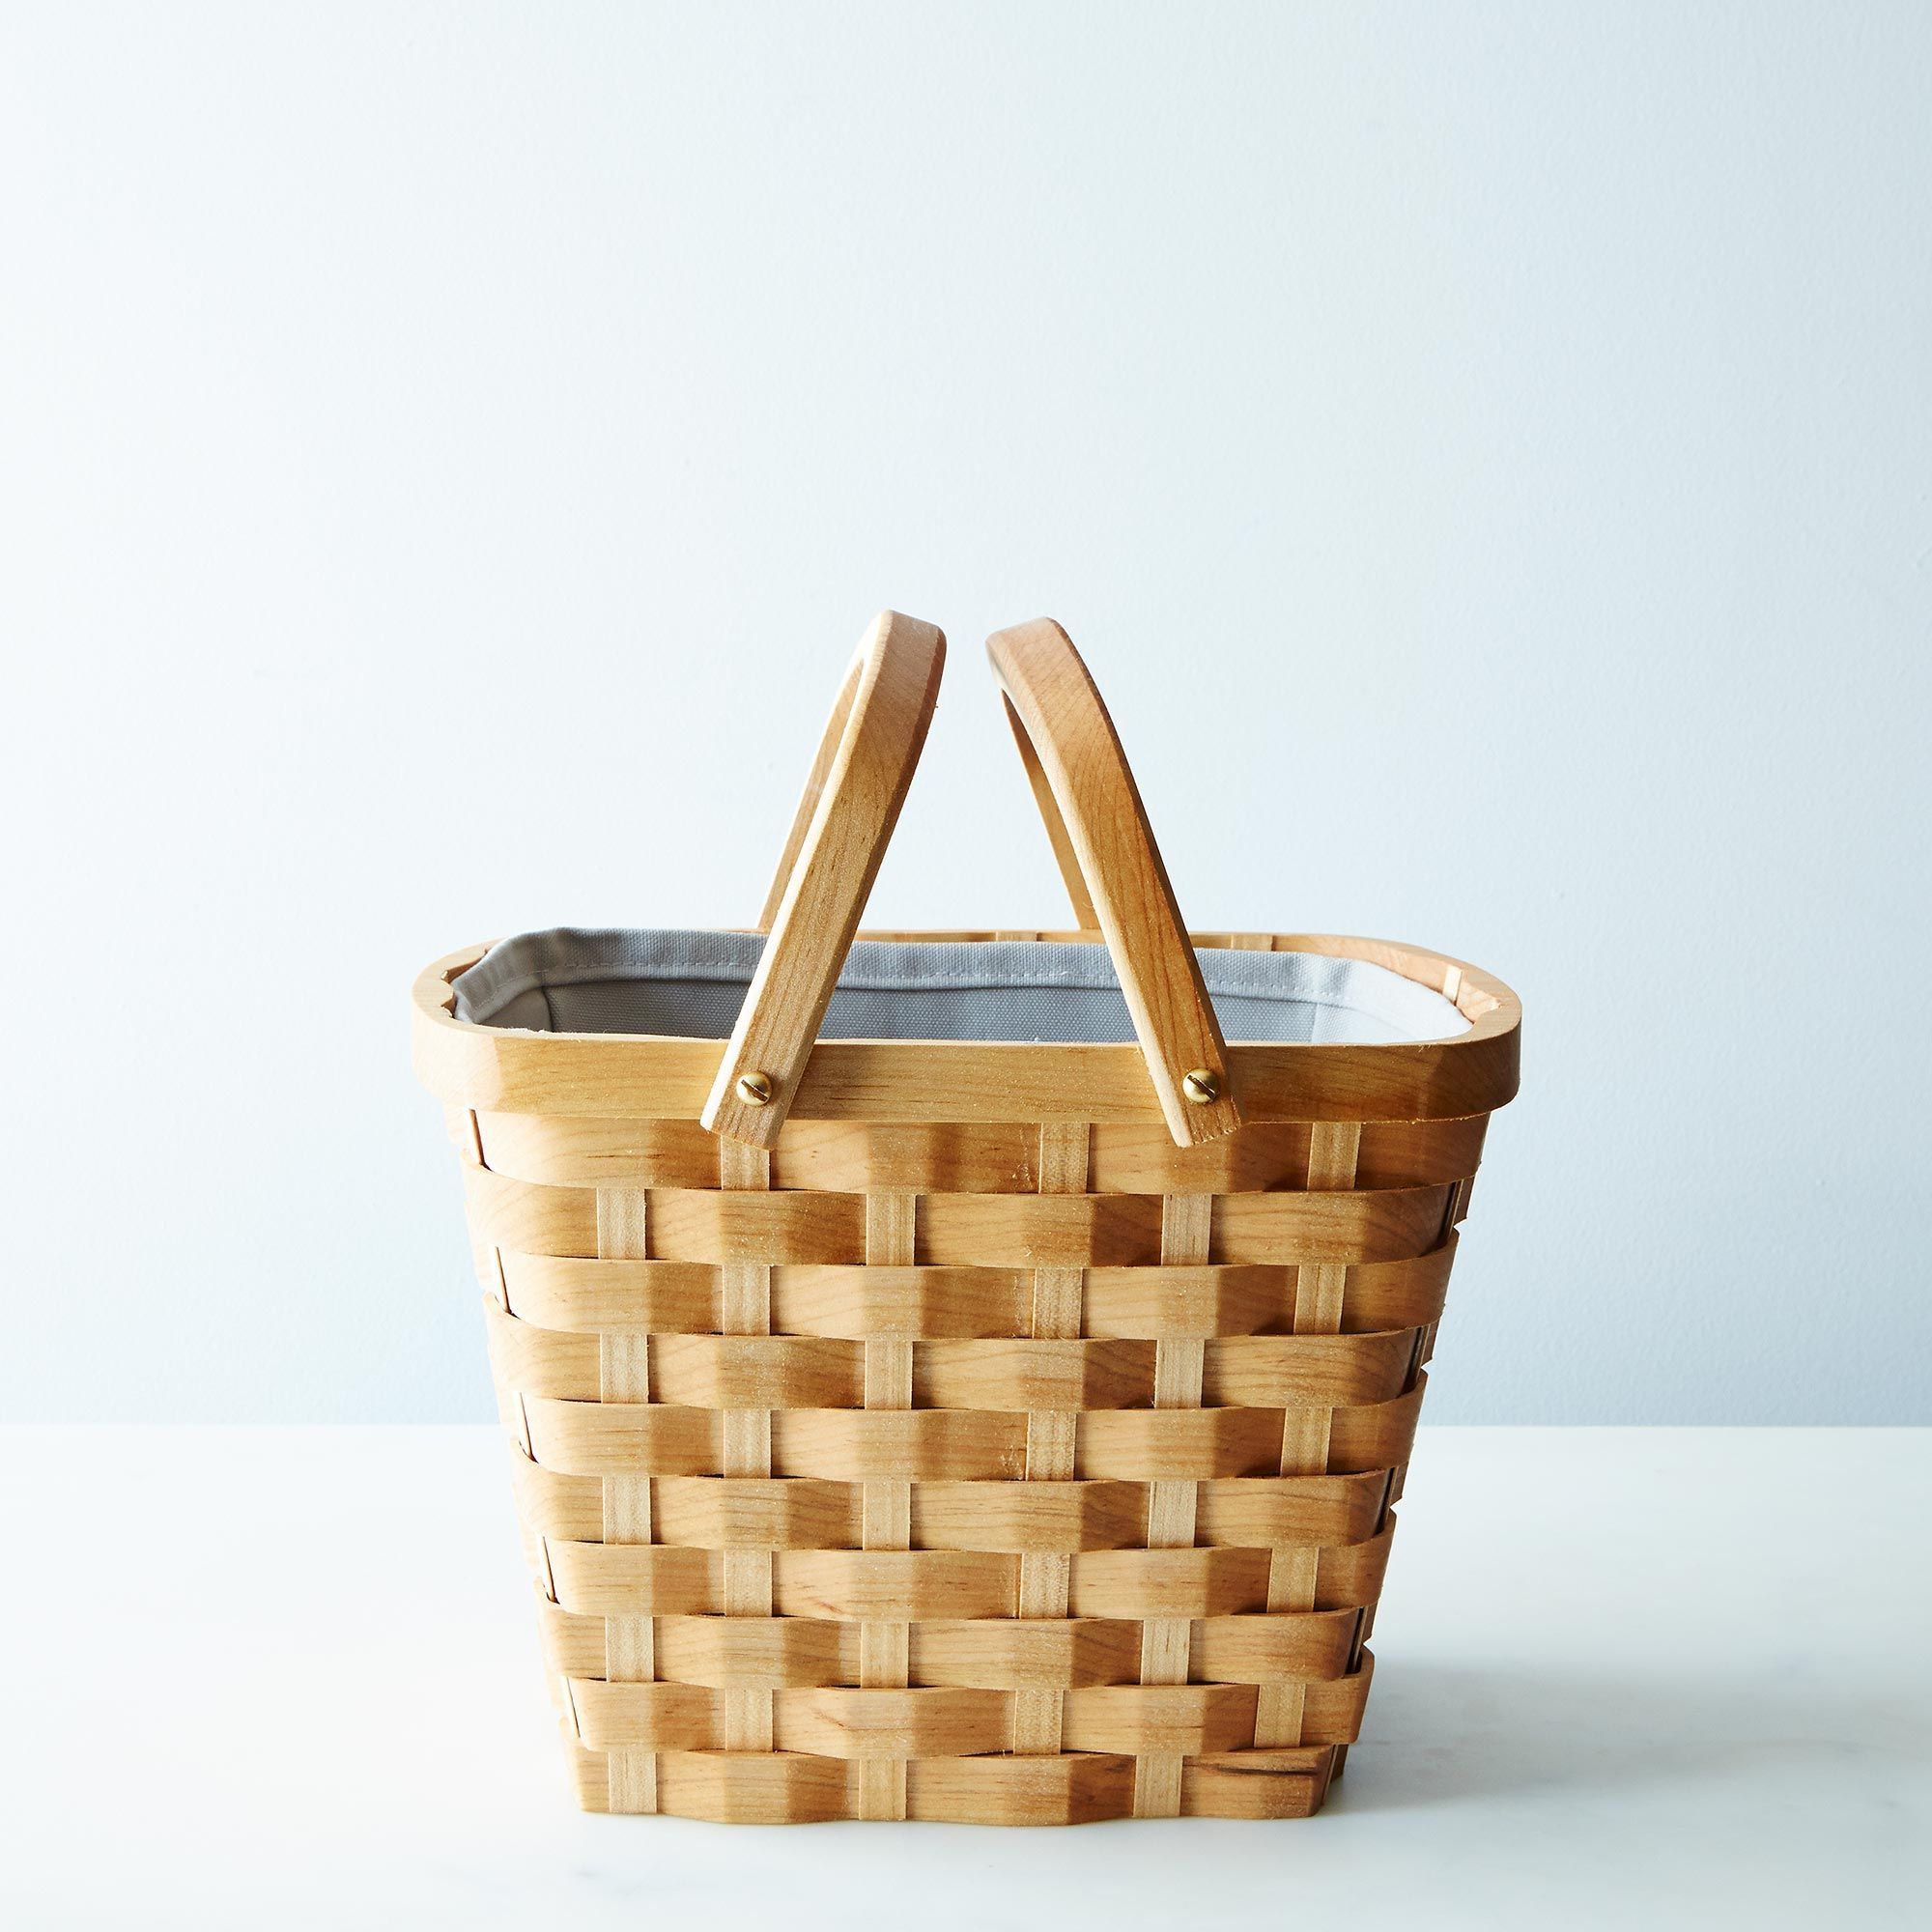 D8ad4f99-e9a2-41c8-b442-588b0ea4d590--2014-0616_baskets-by-debi_wood-carrying-basket-003